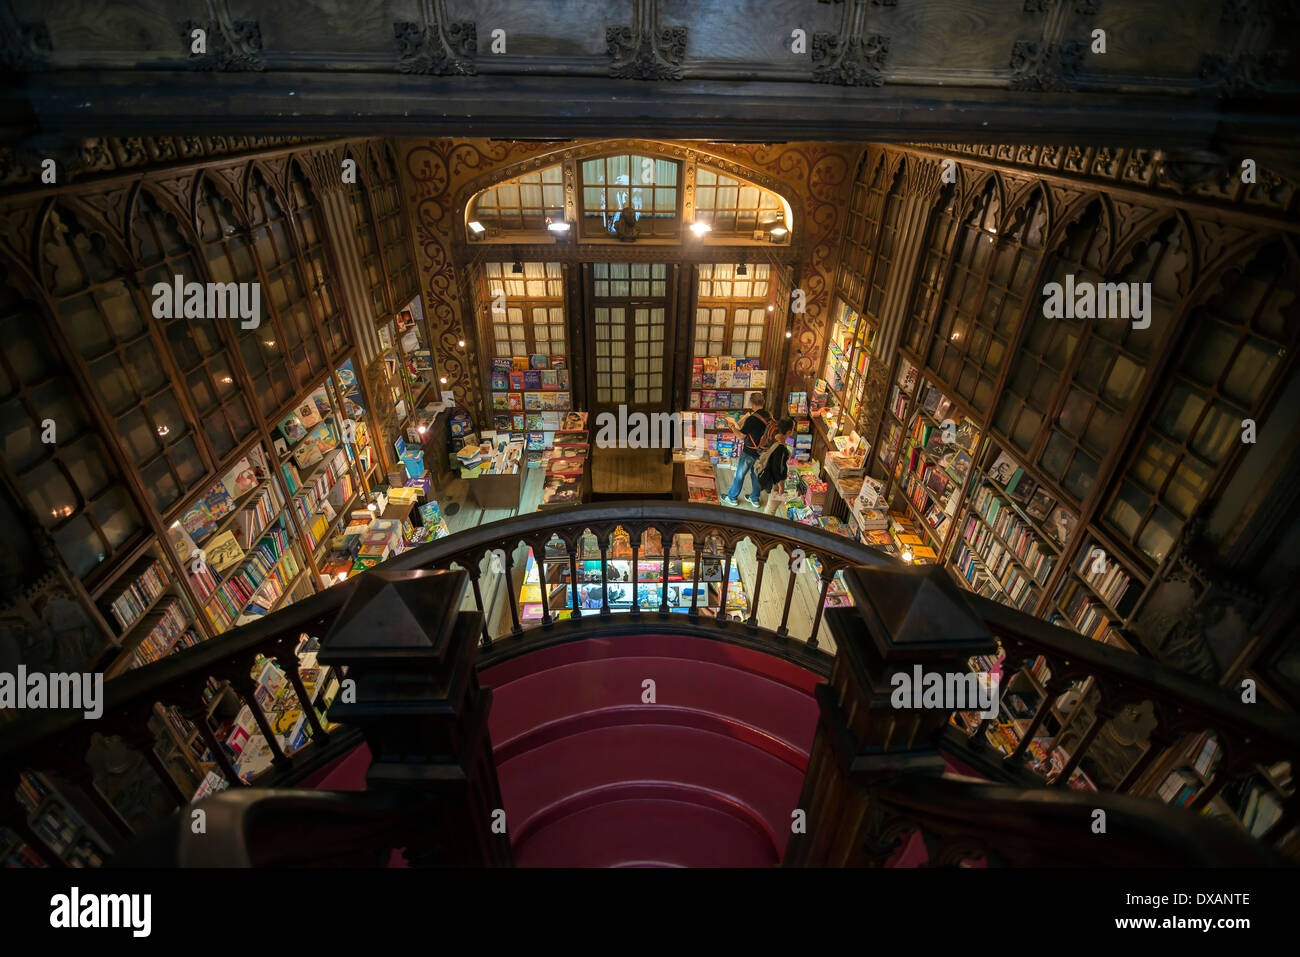 PORTO, PORTUGAL - MARCH 3, 2014: Interior of the famous bookstore in Porto Portugal called Livraria Lello Irmão - Stock Image